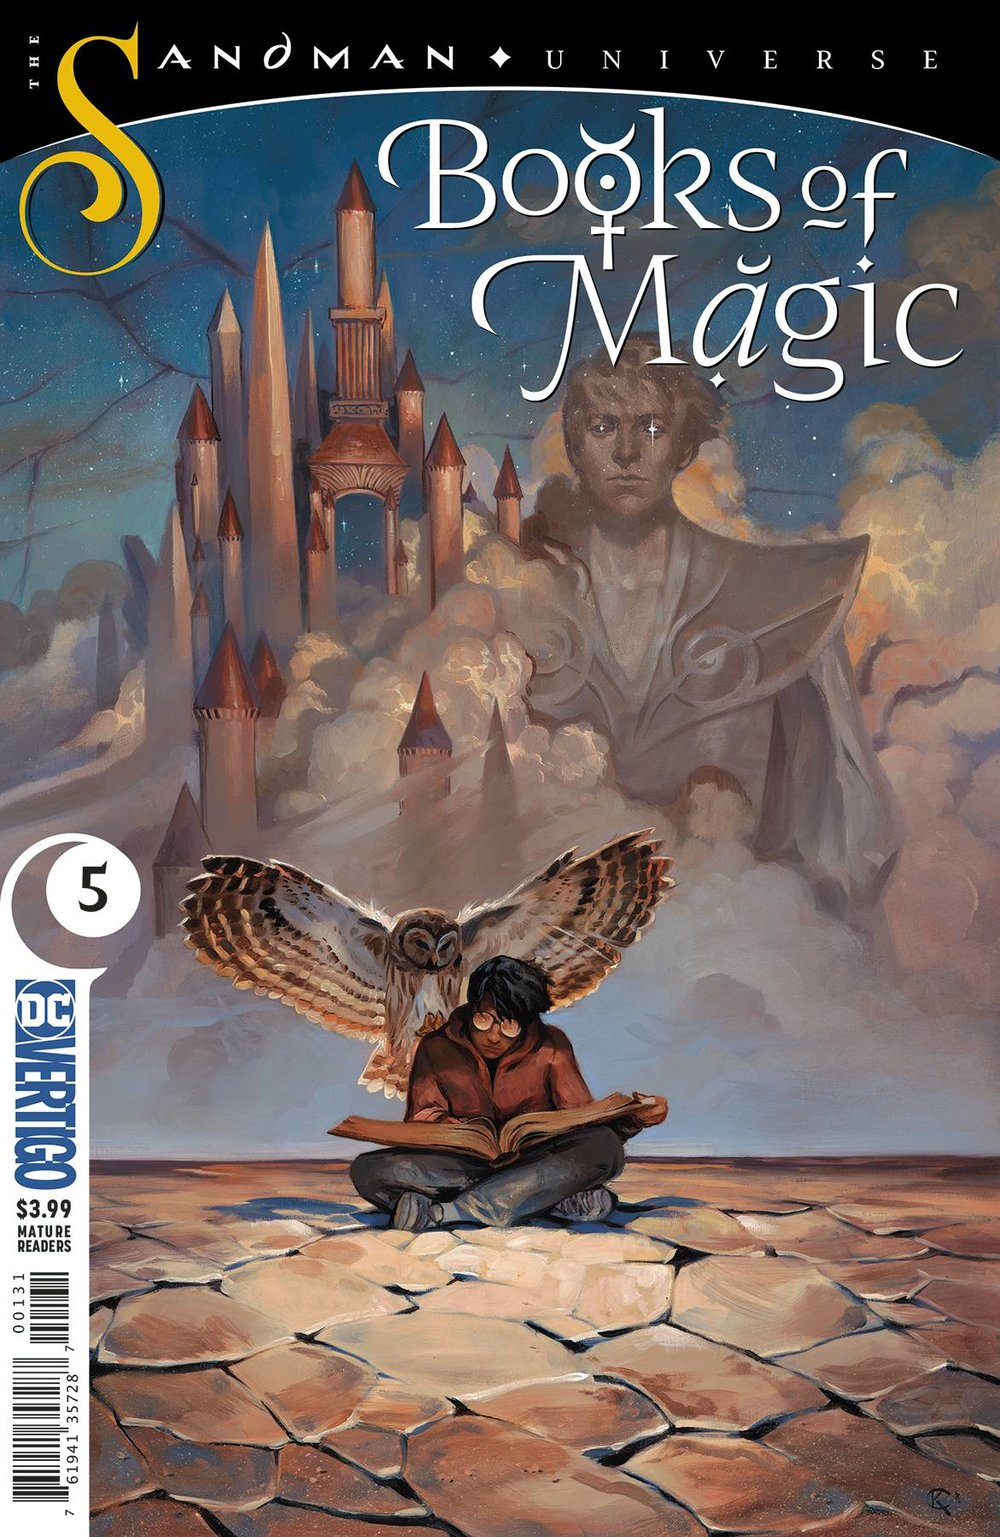 BOOKS OF MAGIC 5.jpg